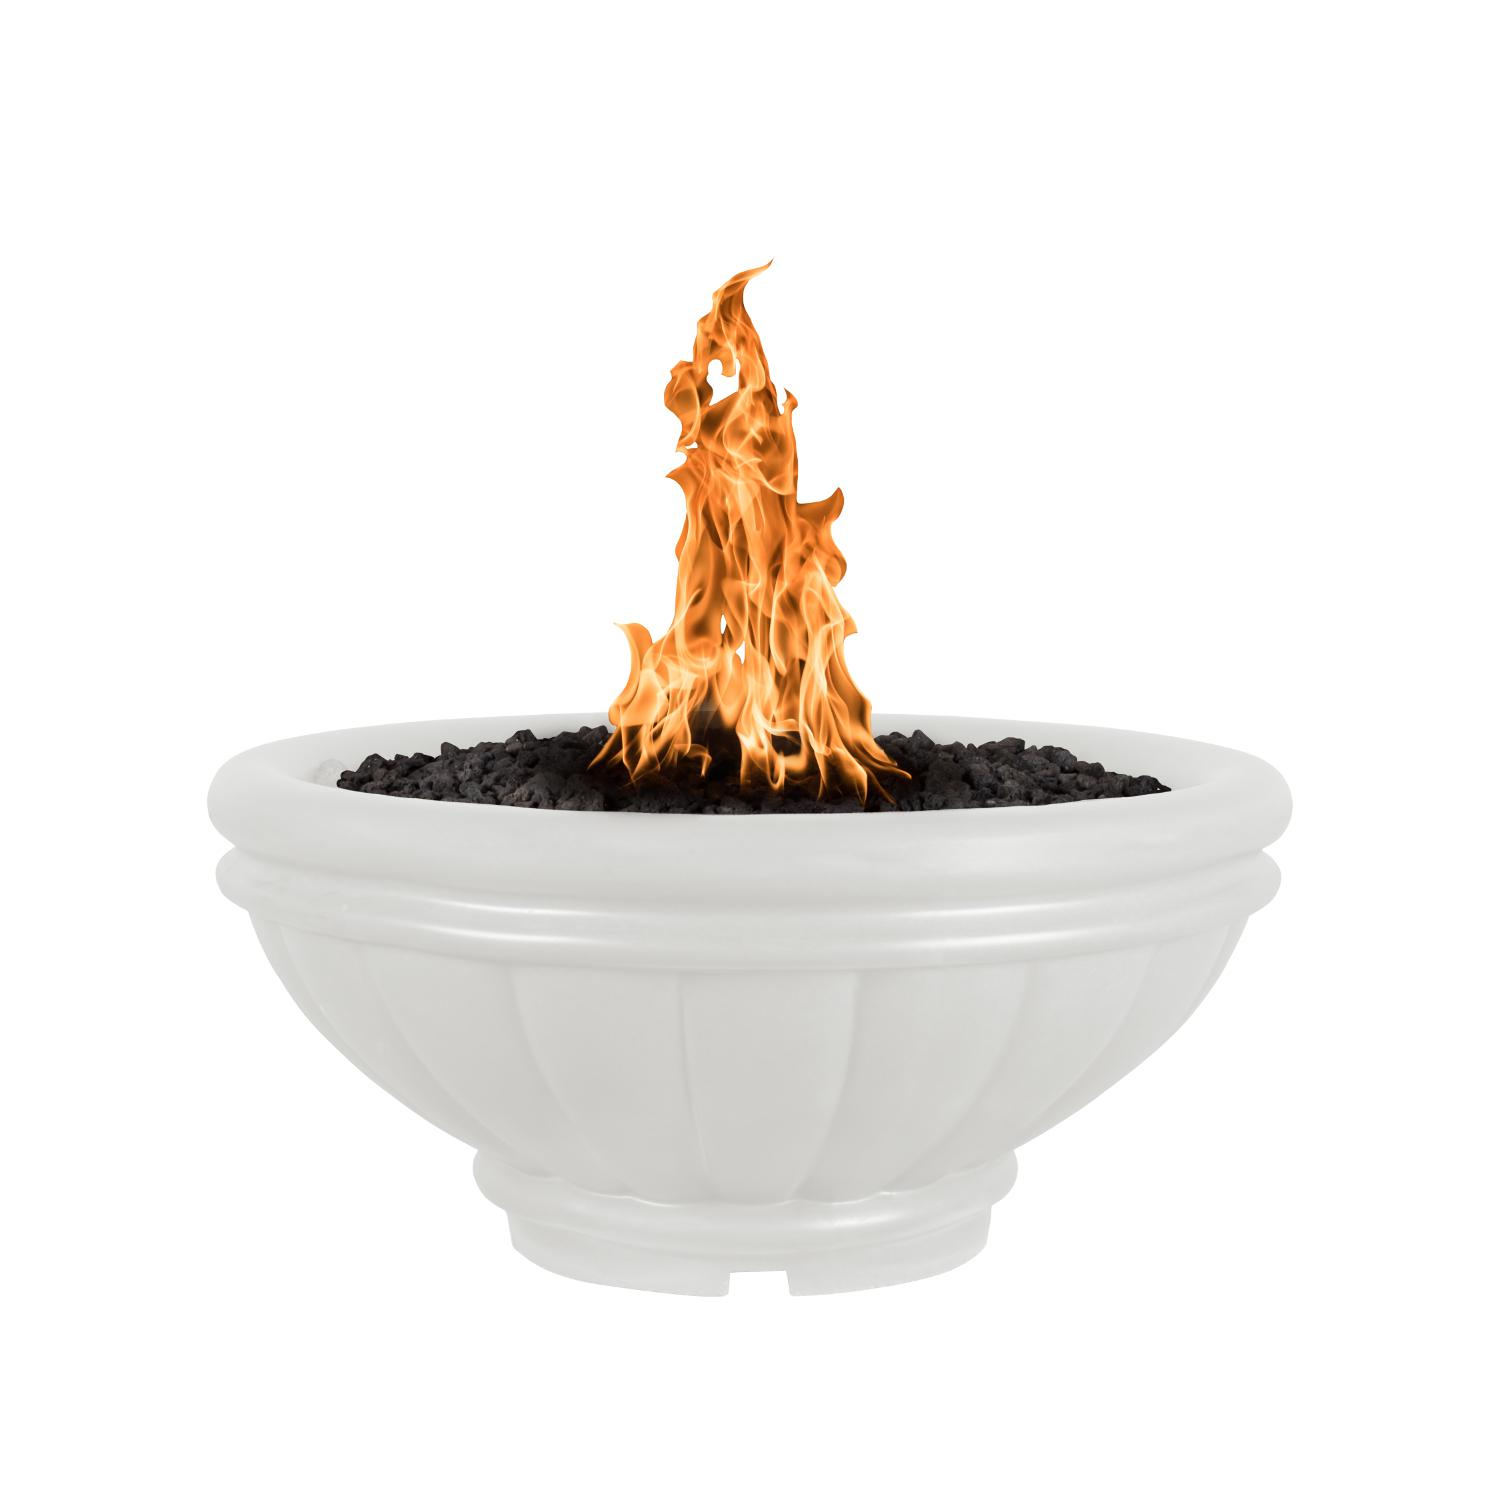 The Outdoor Plus Top Fires by Roma 24 Natural Gas Fire Bowl - Limestone Concrete - Match Light - OPT-ROM24-LIM-NG